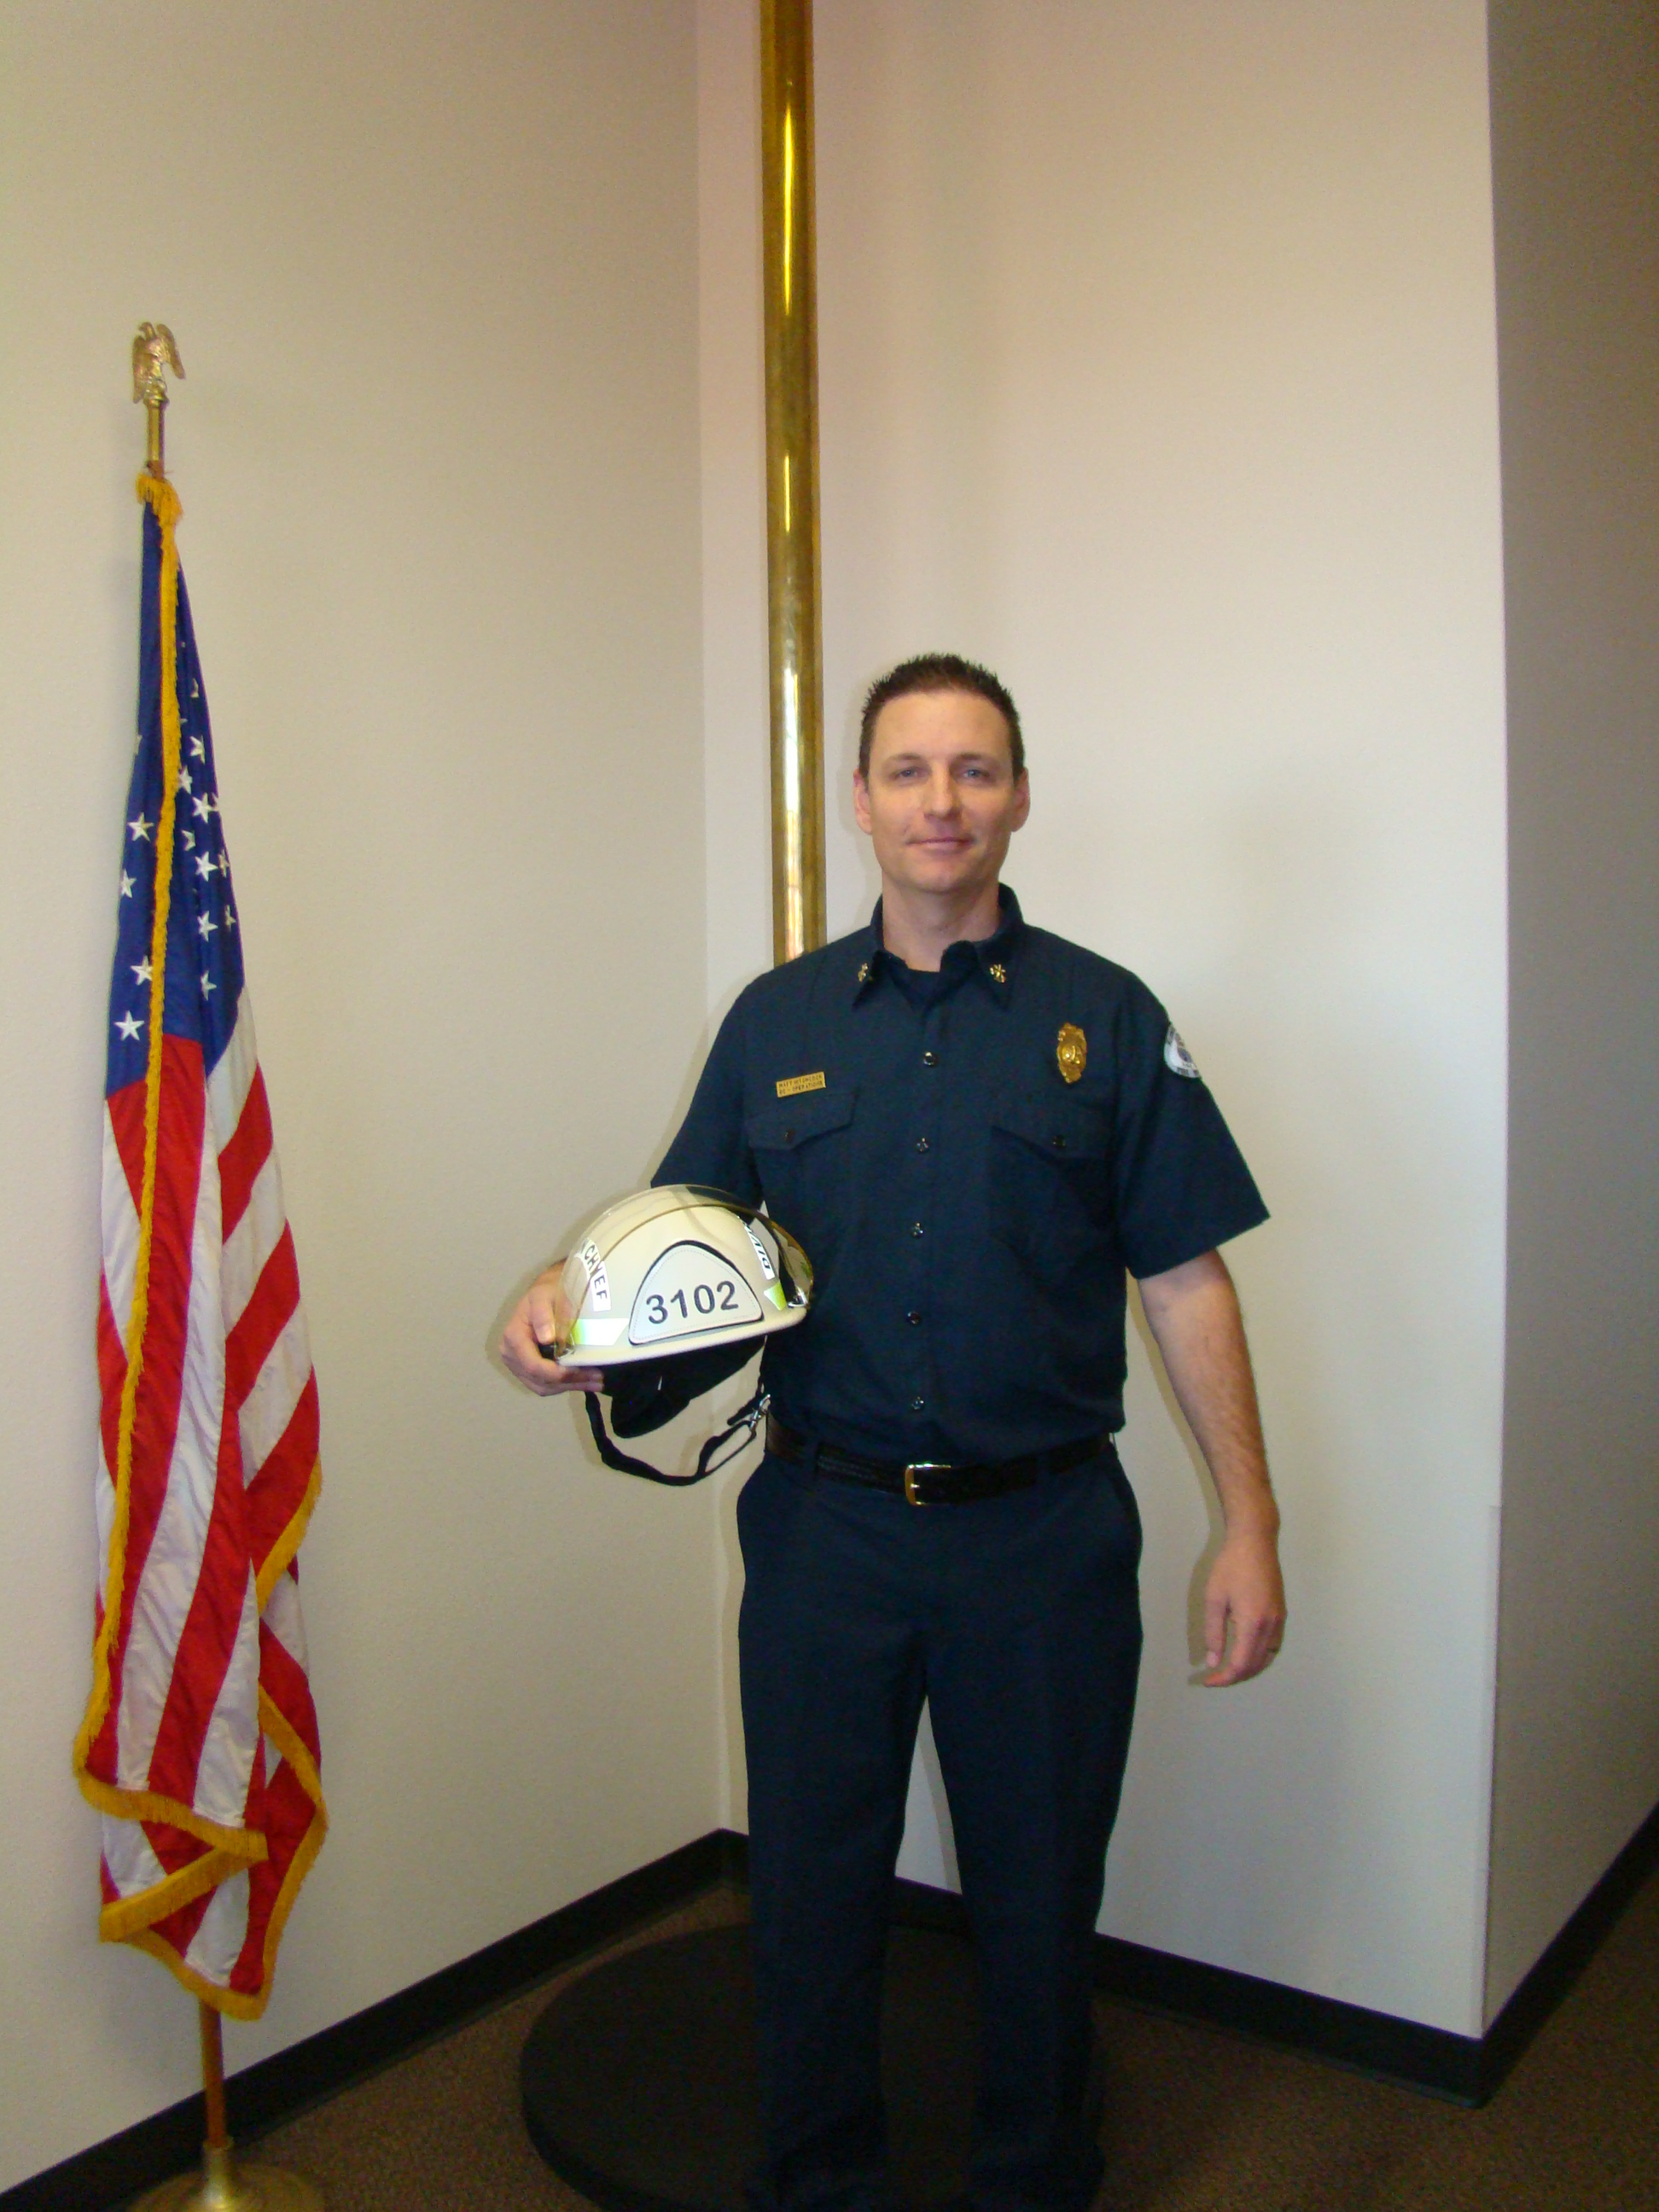 Hitchcock poses as the new Division Chief. (Image, KCFD 1)